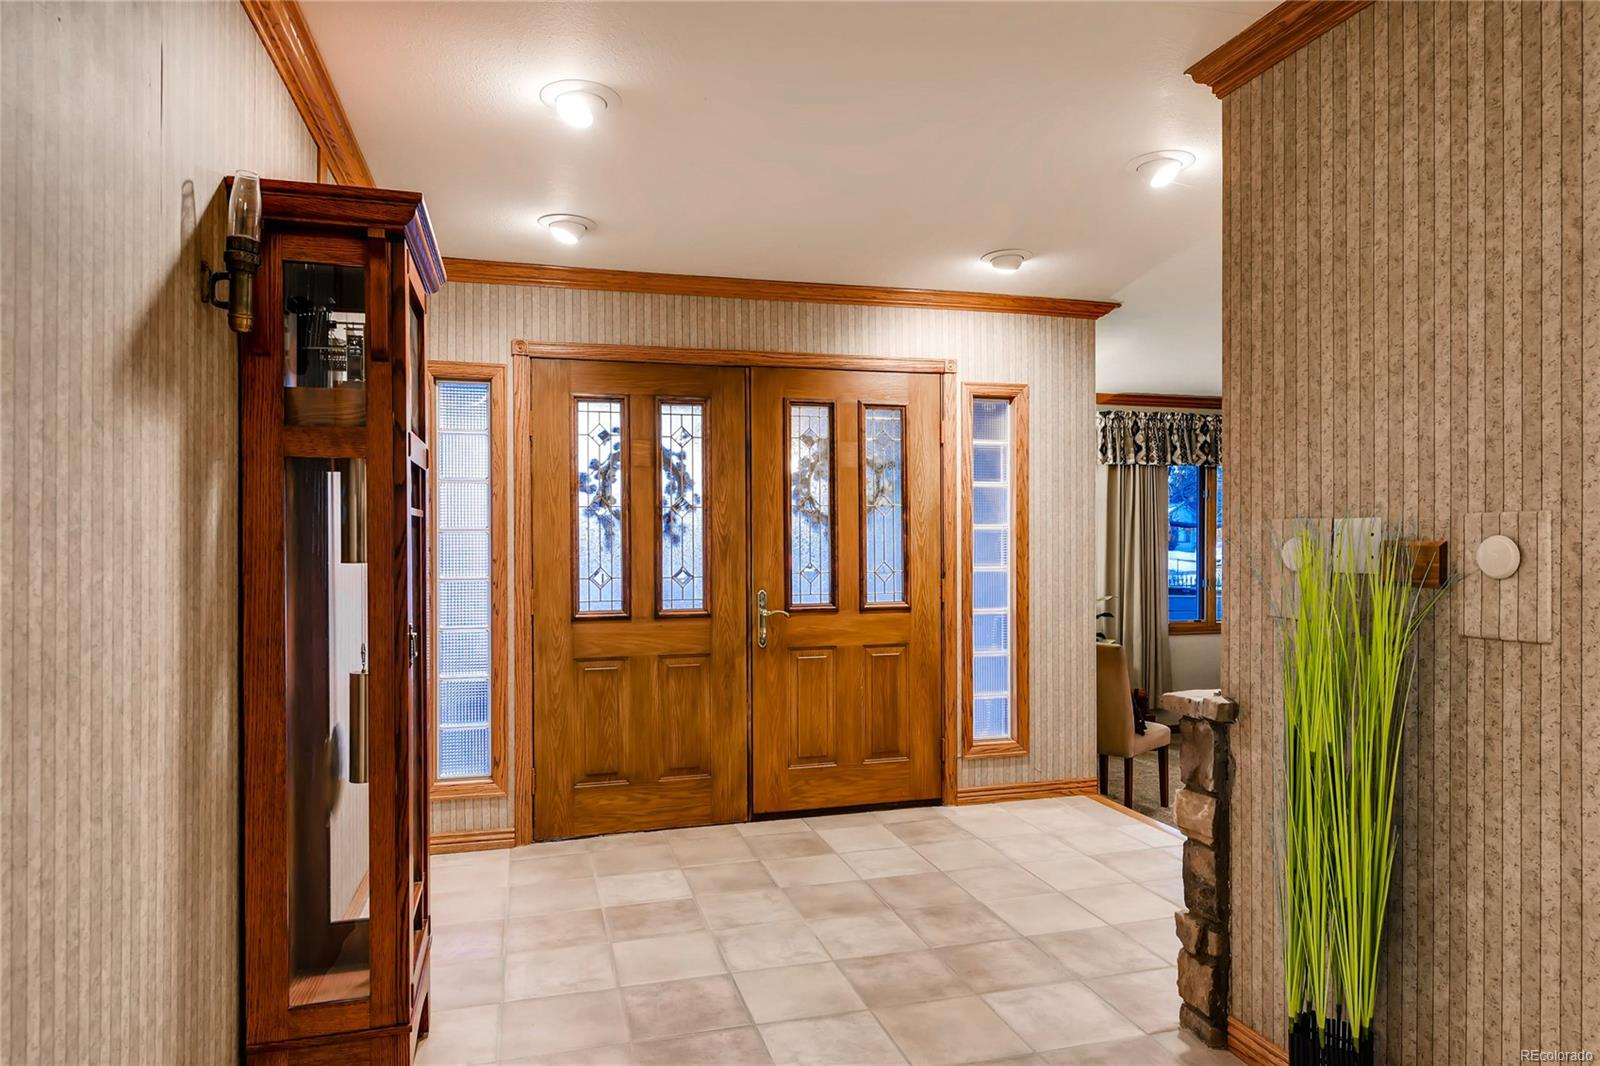 Bright and Airy entryway.